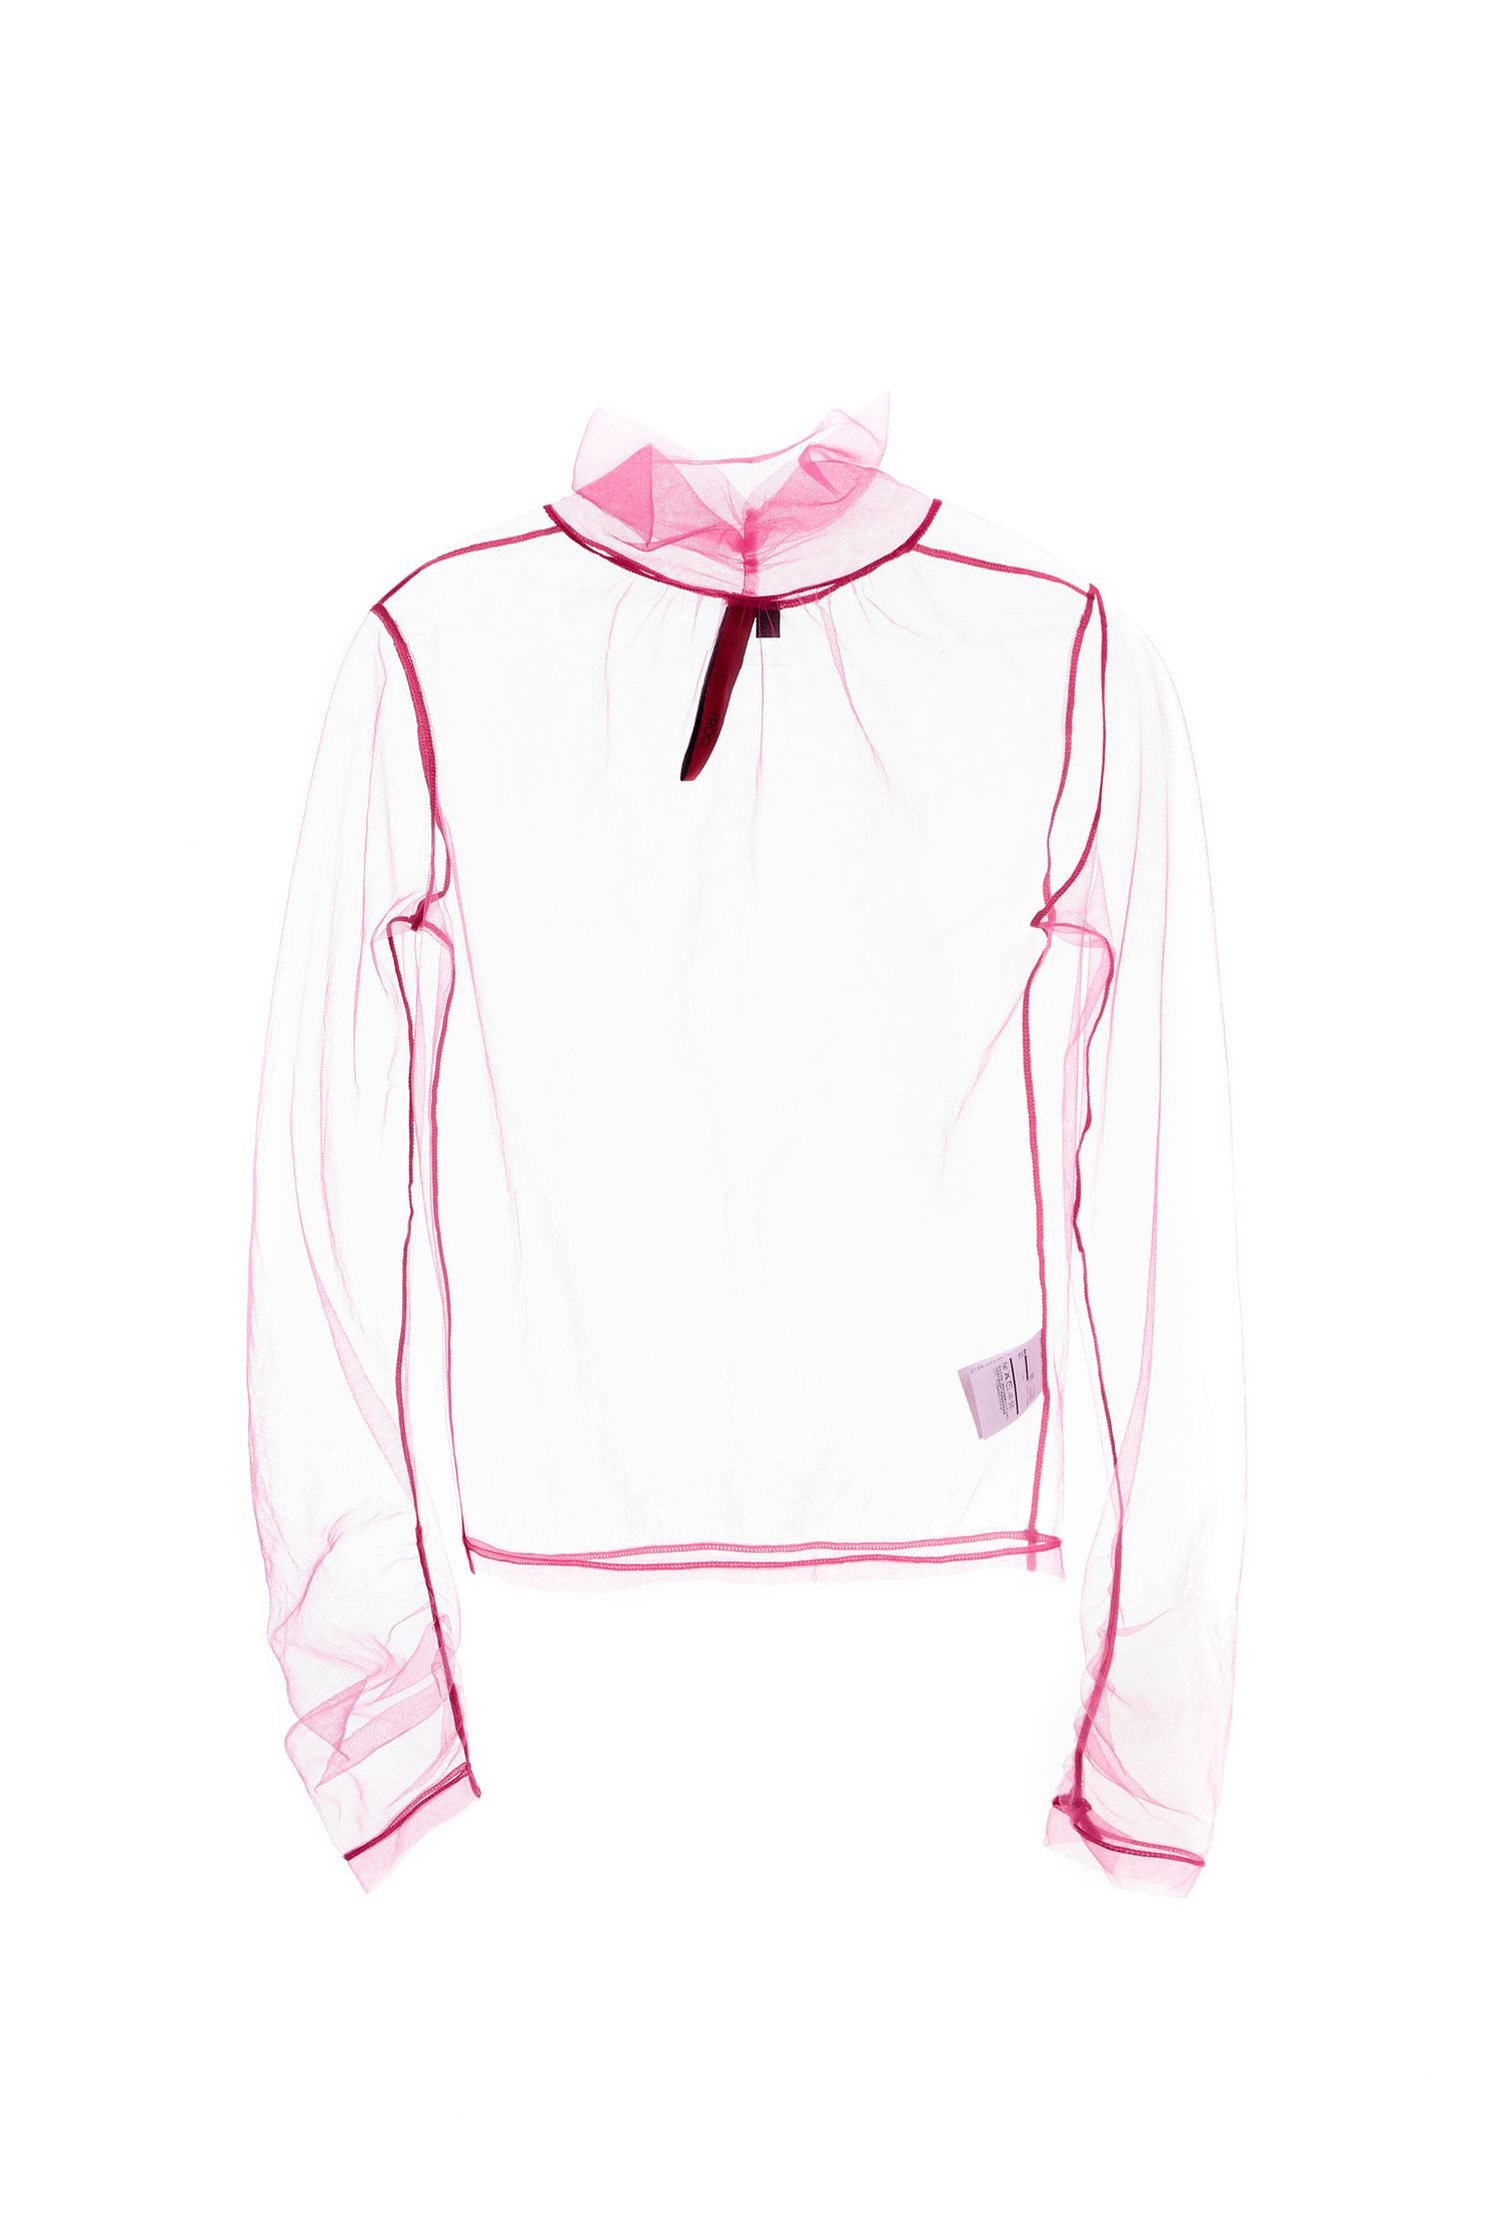 iRoo x 3.one Breathable trending top(pink)